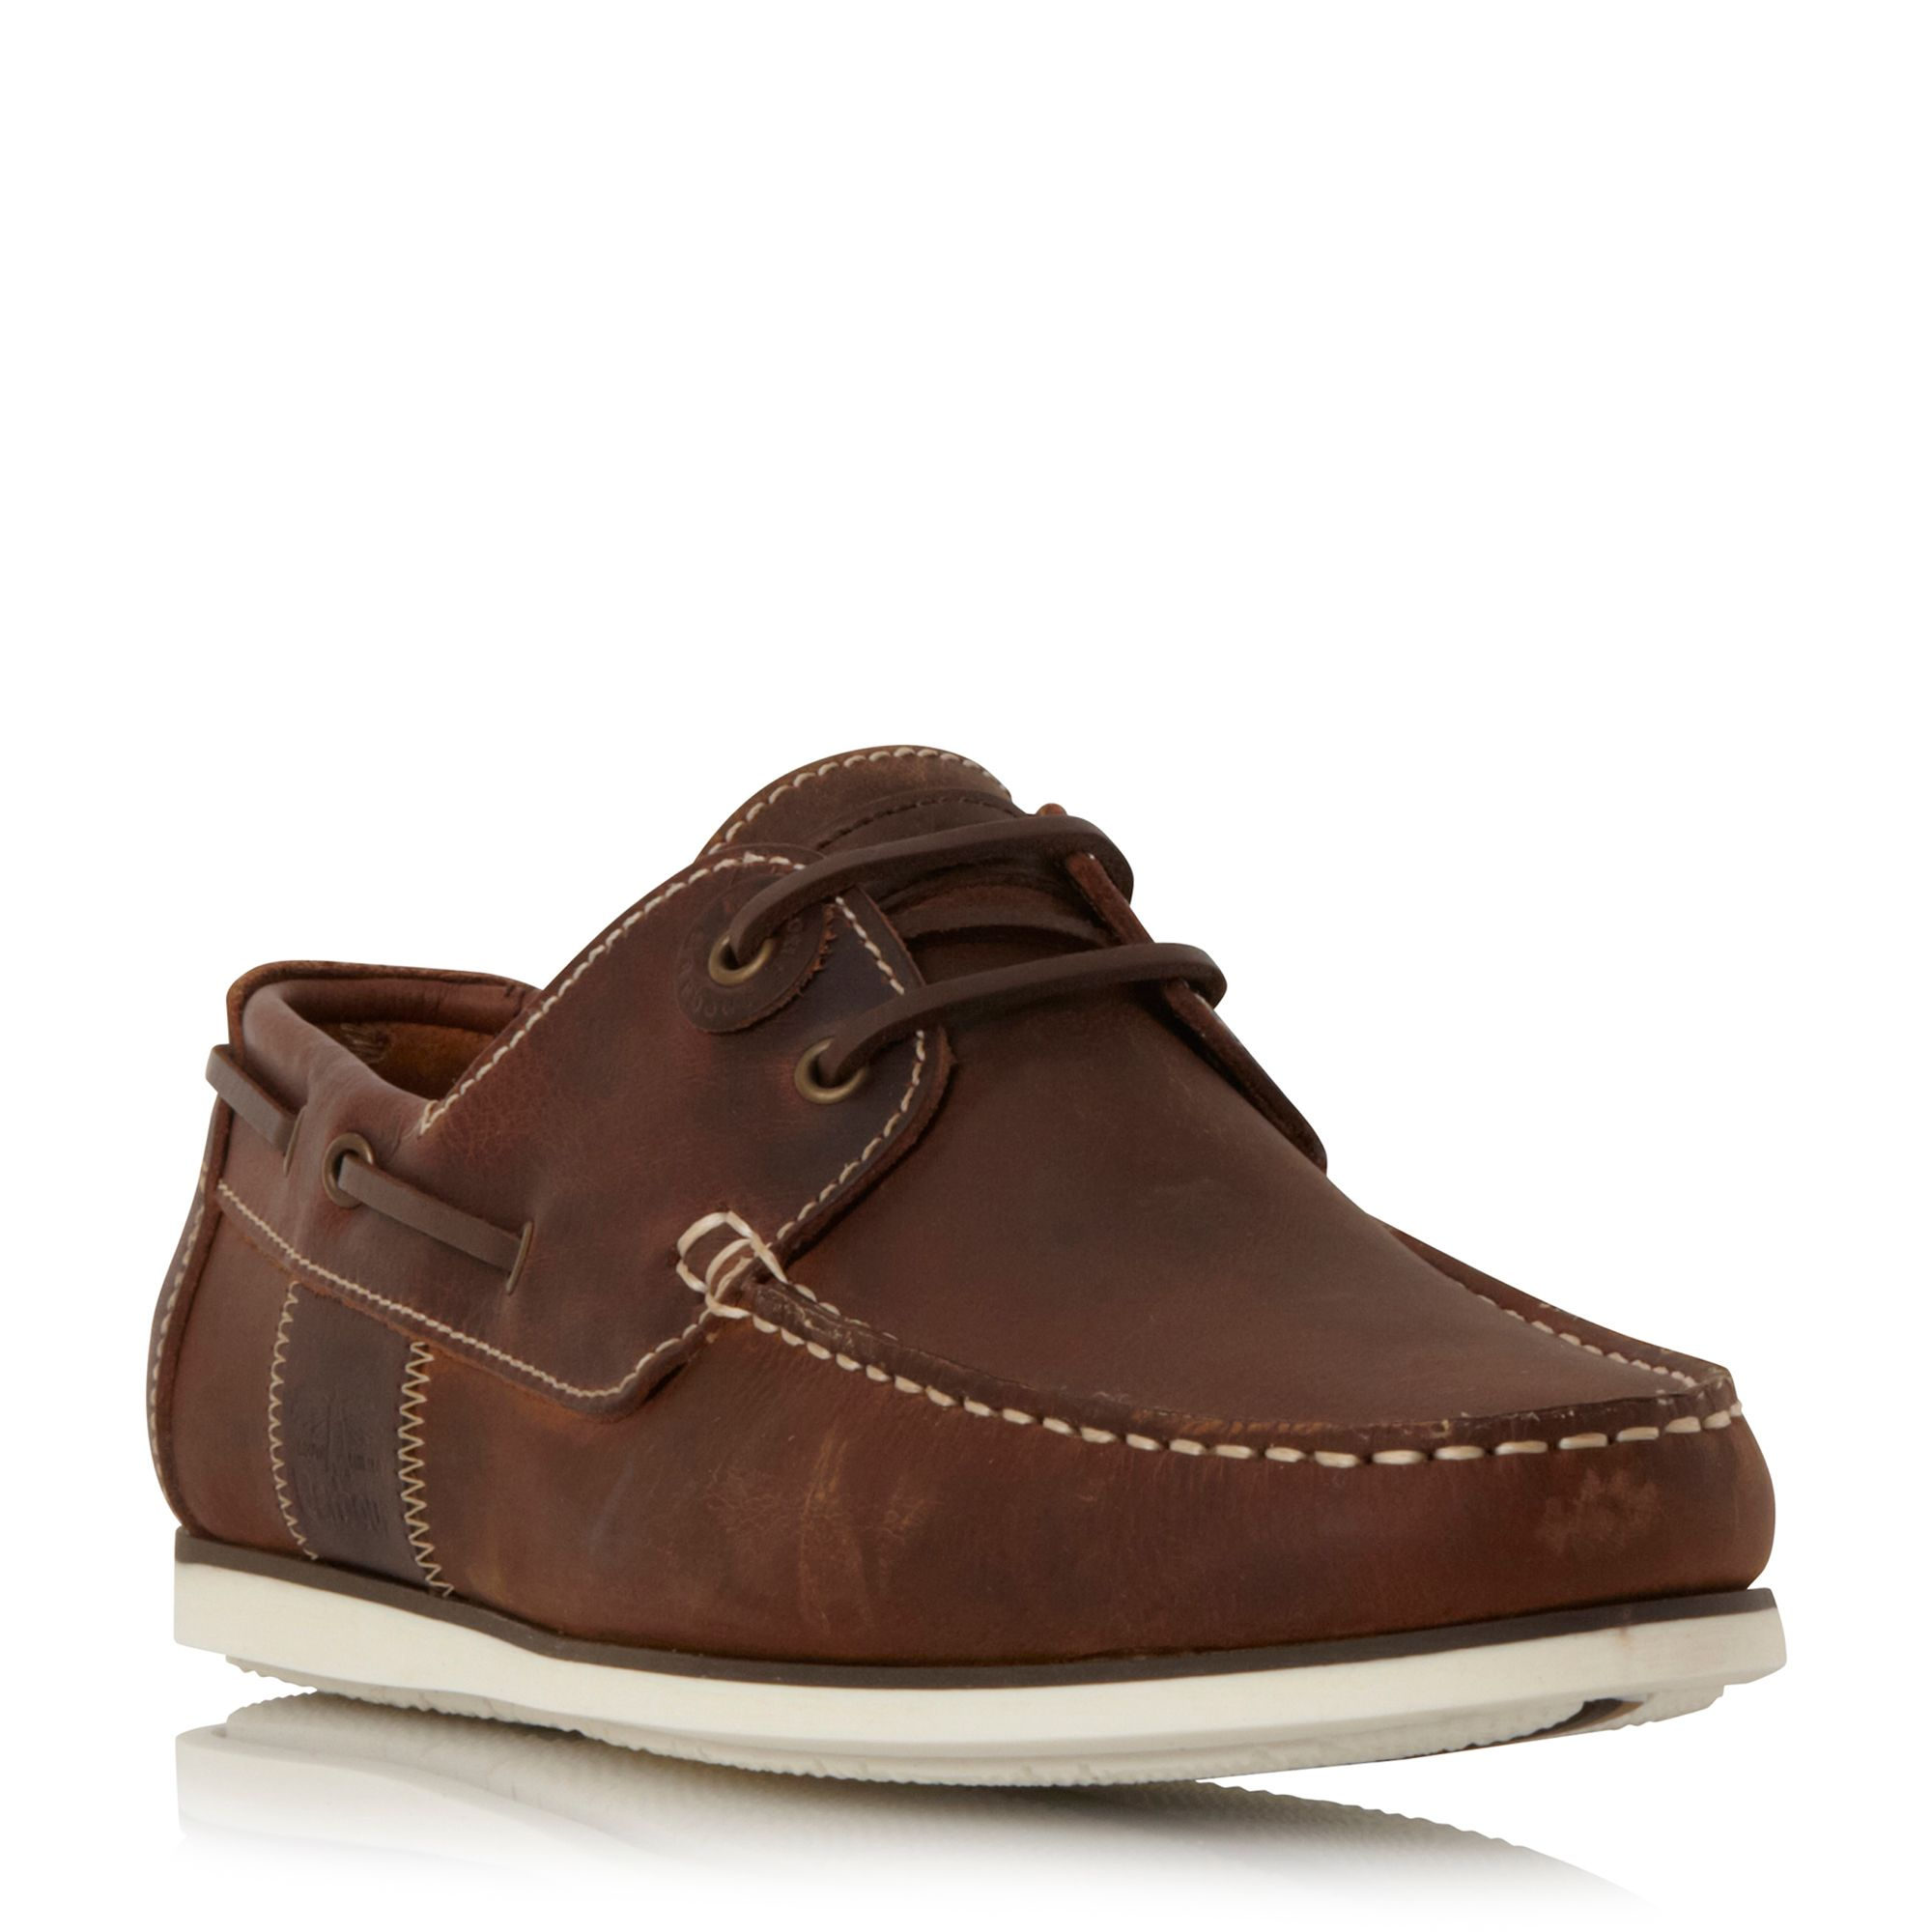 Barbour Capstan eyelet lace up boat shoes ...